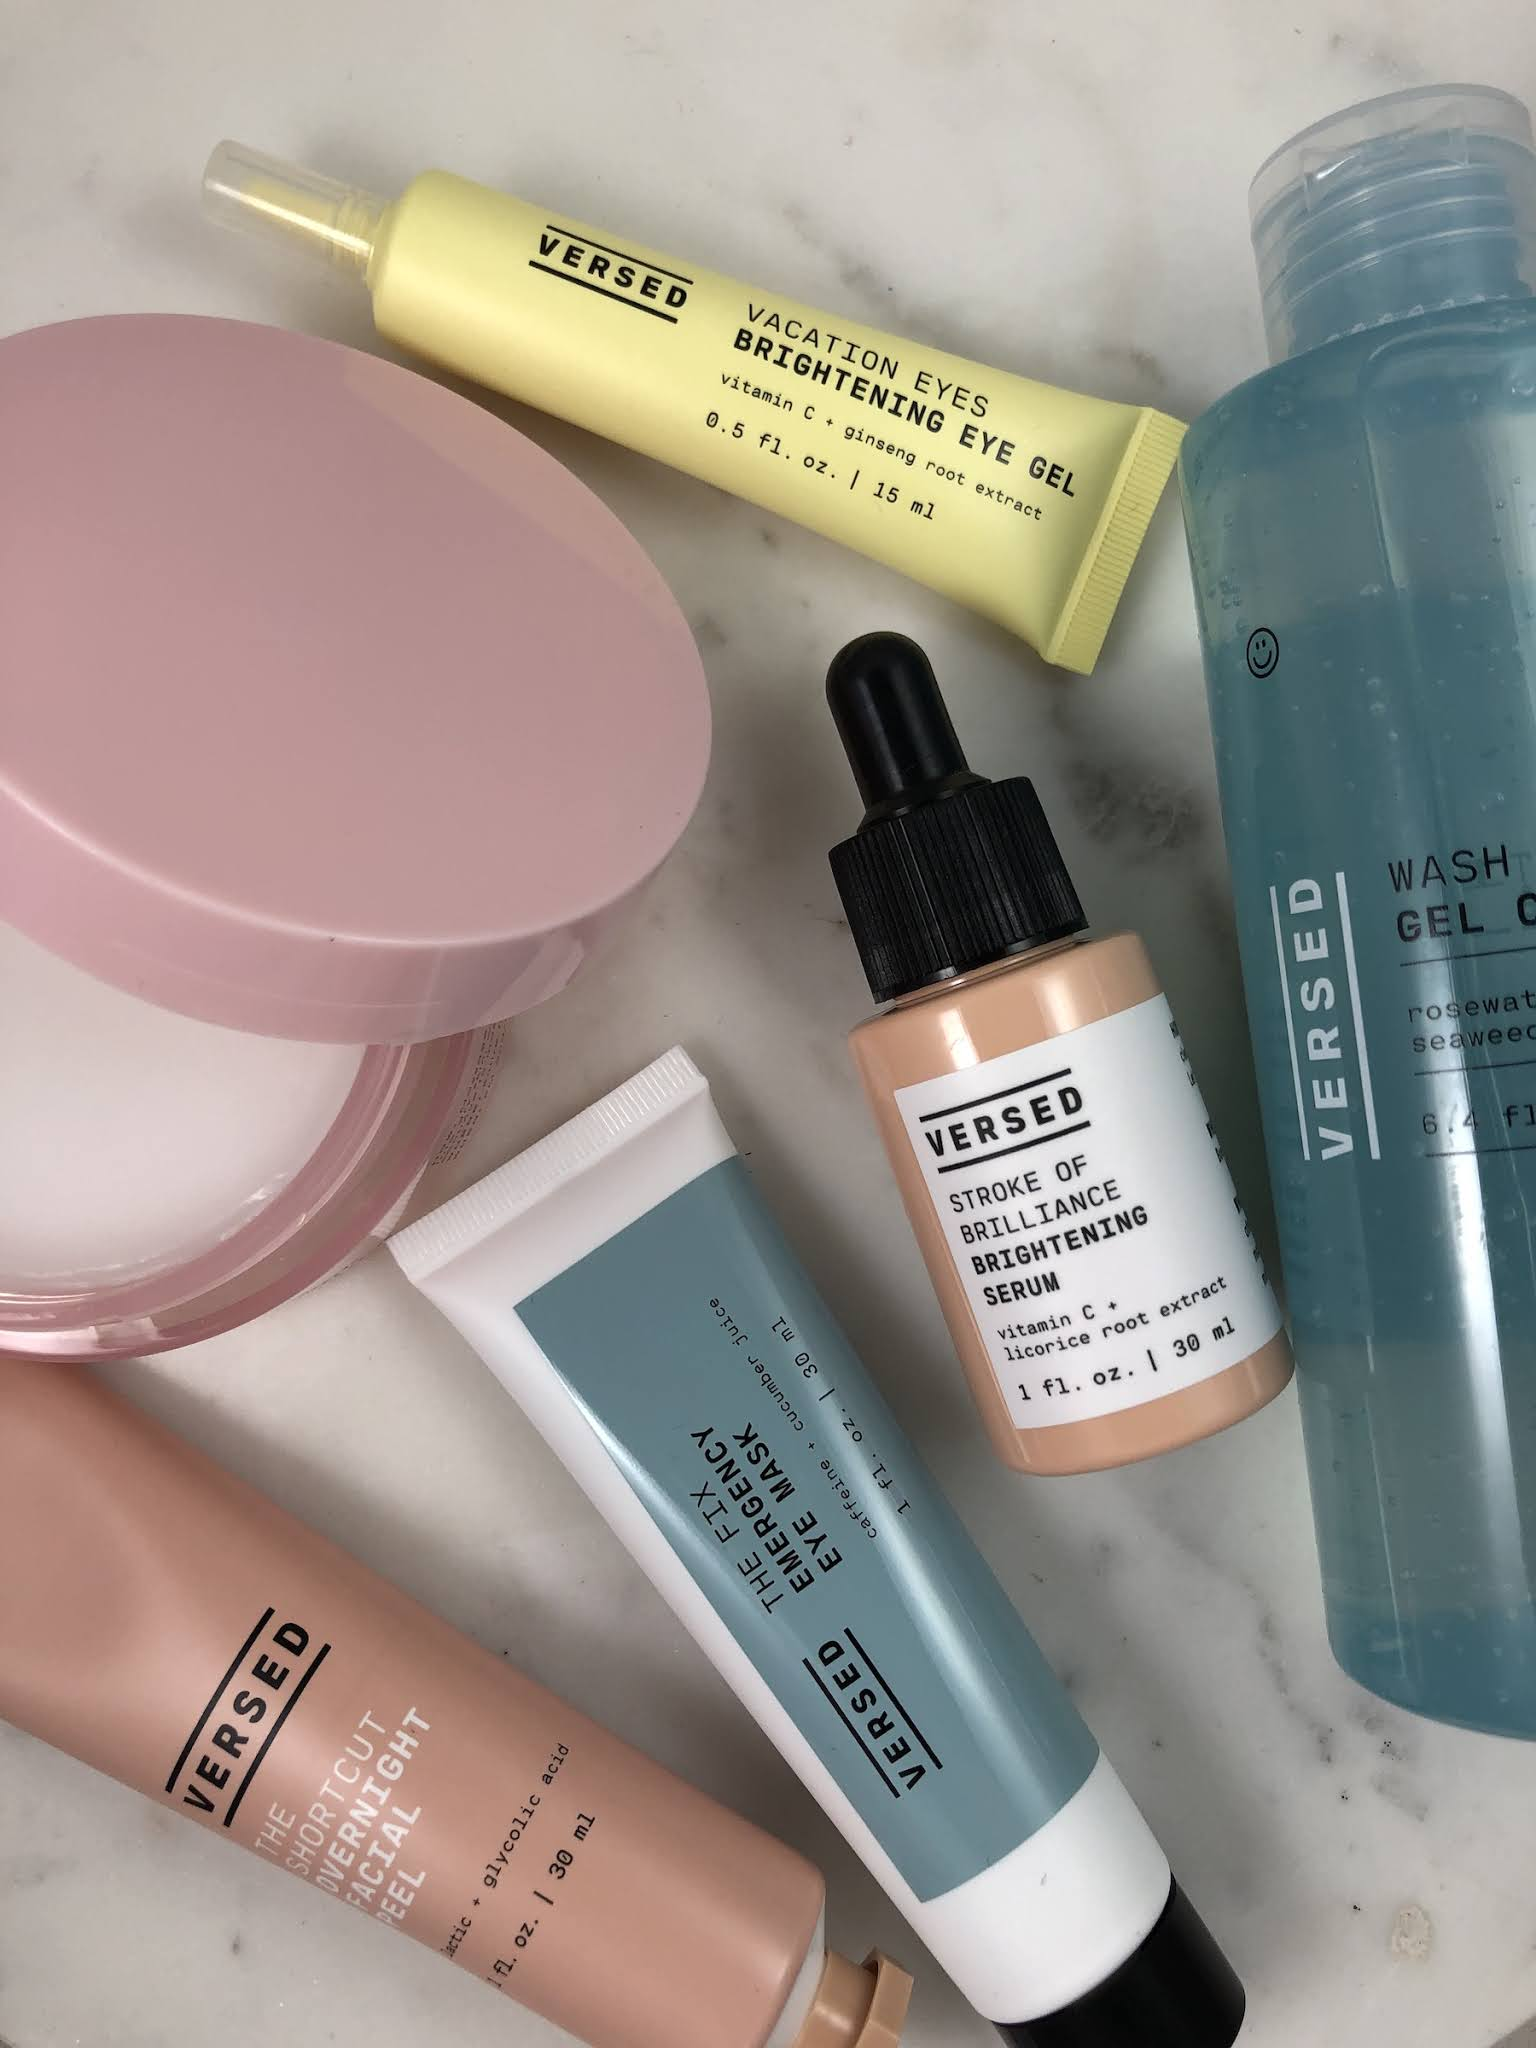 Versed Skincare: A quick review